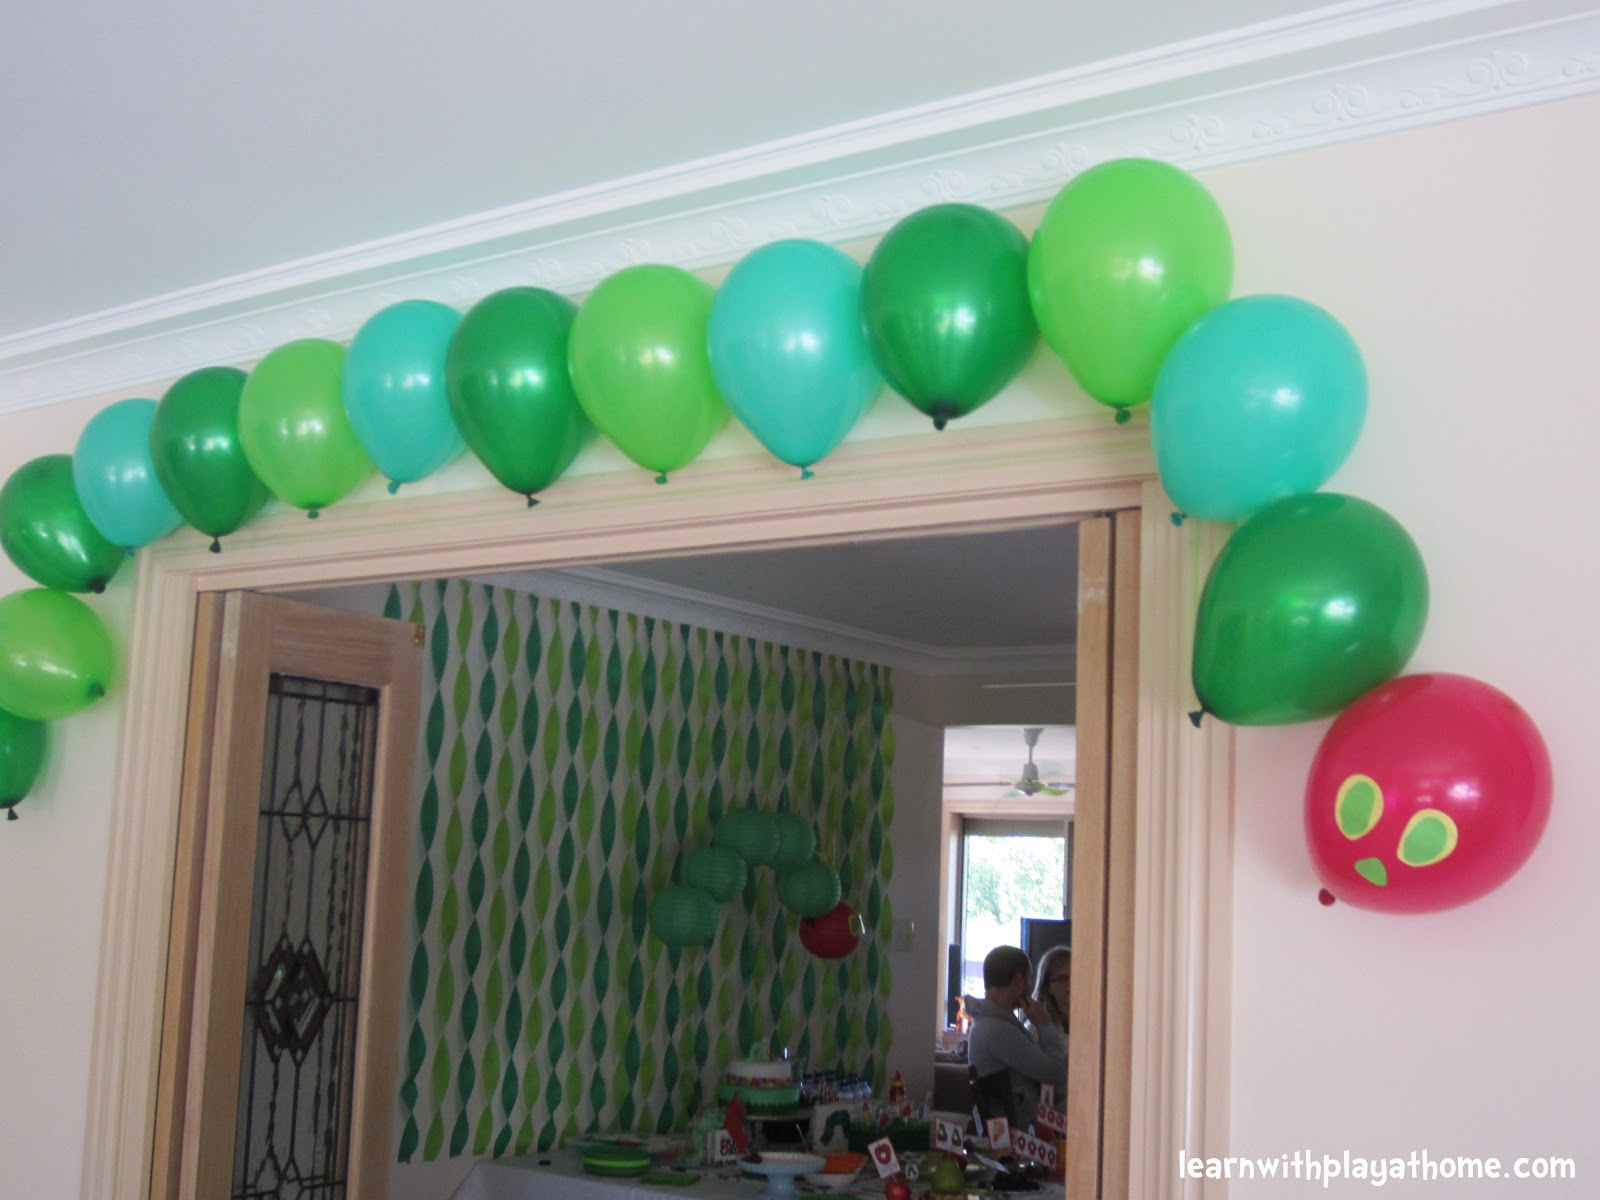 Learn with play at home diy party decorations for Balloon decoration on wall for birthday